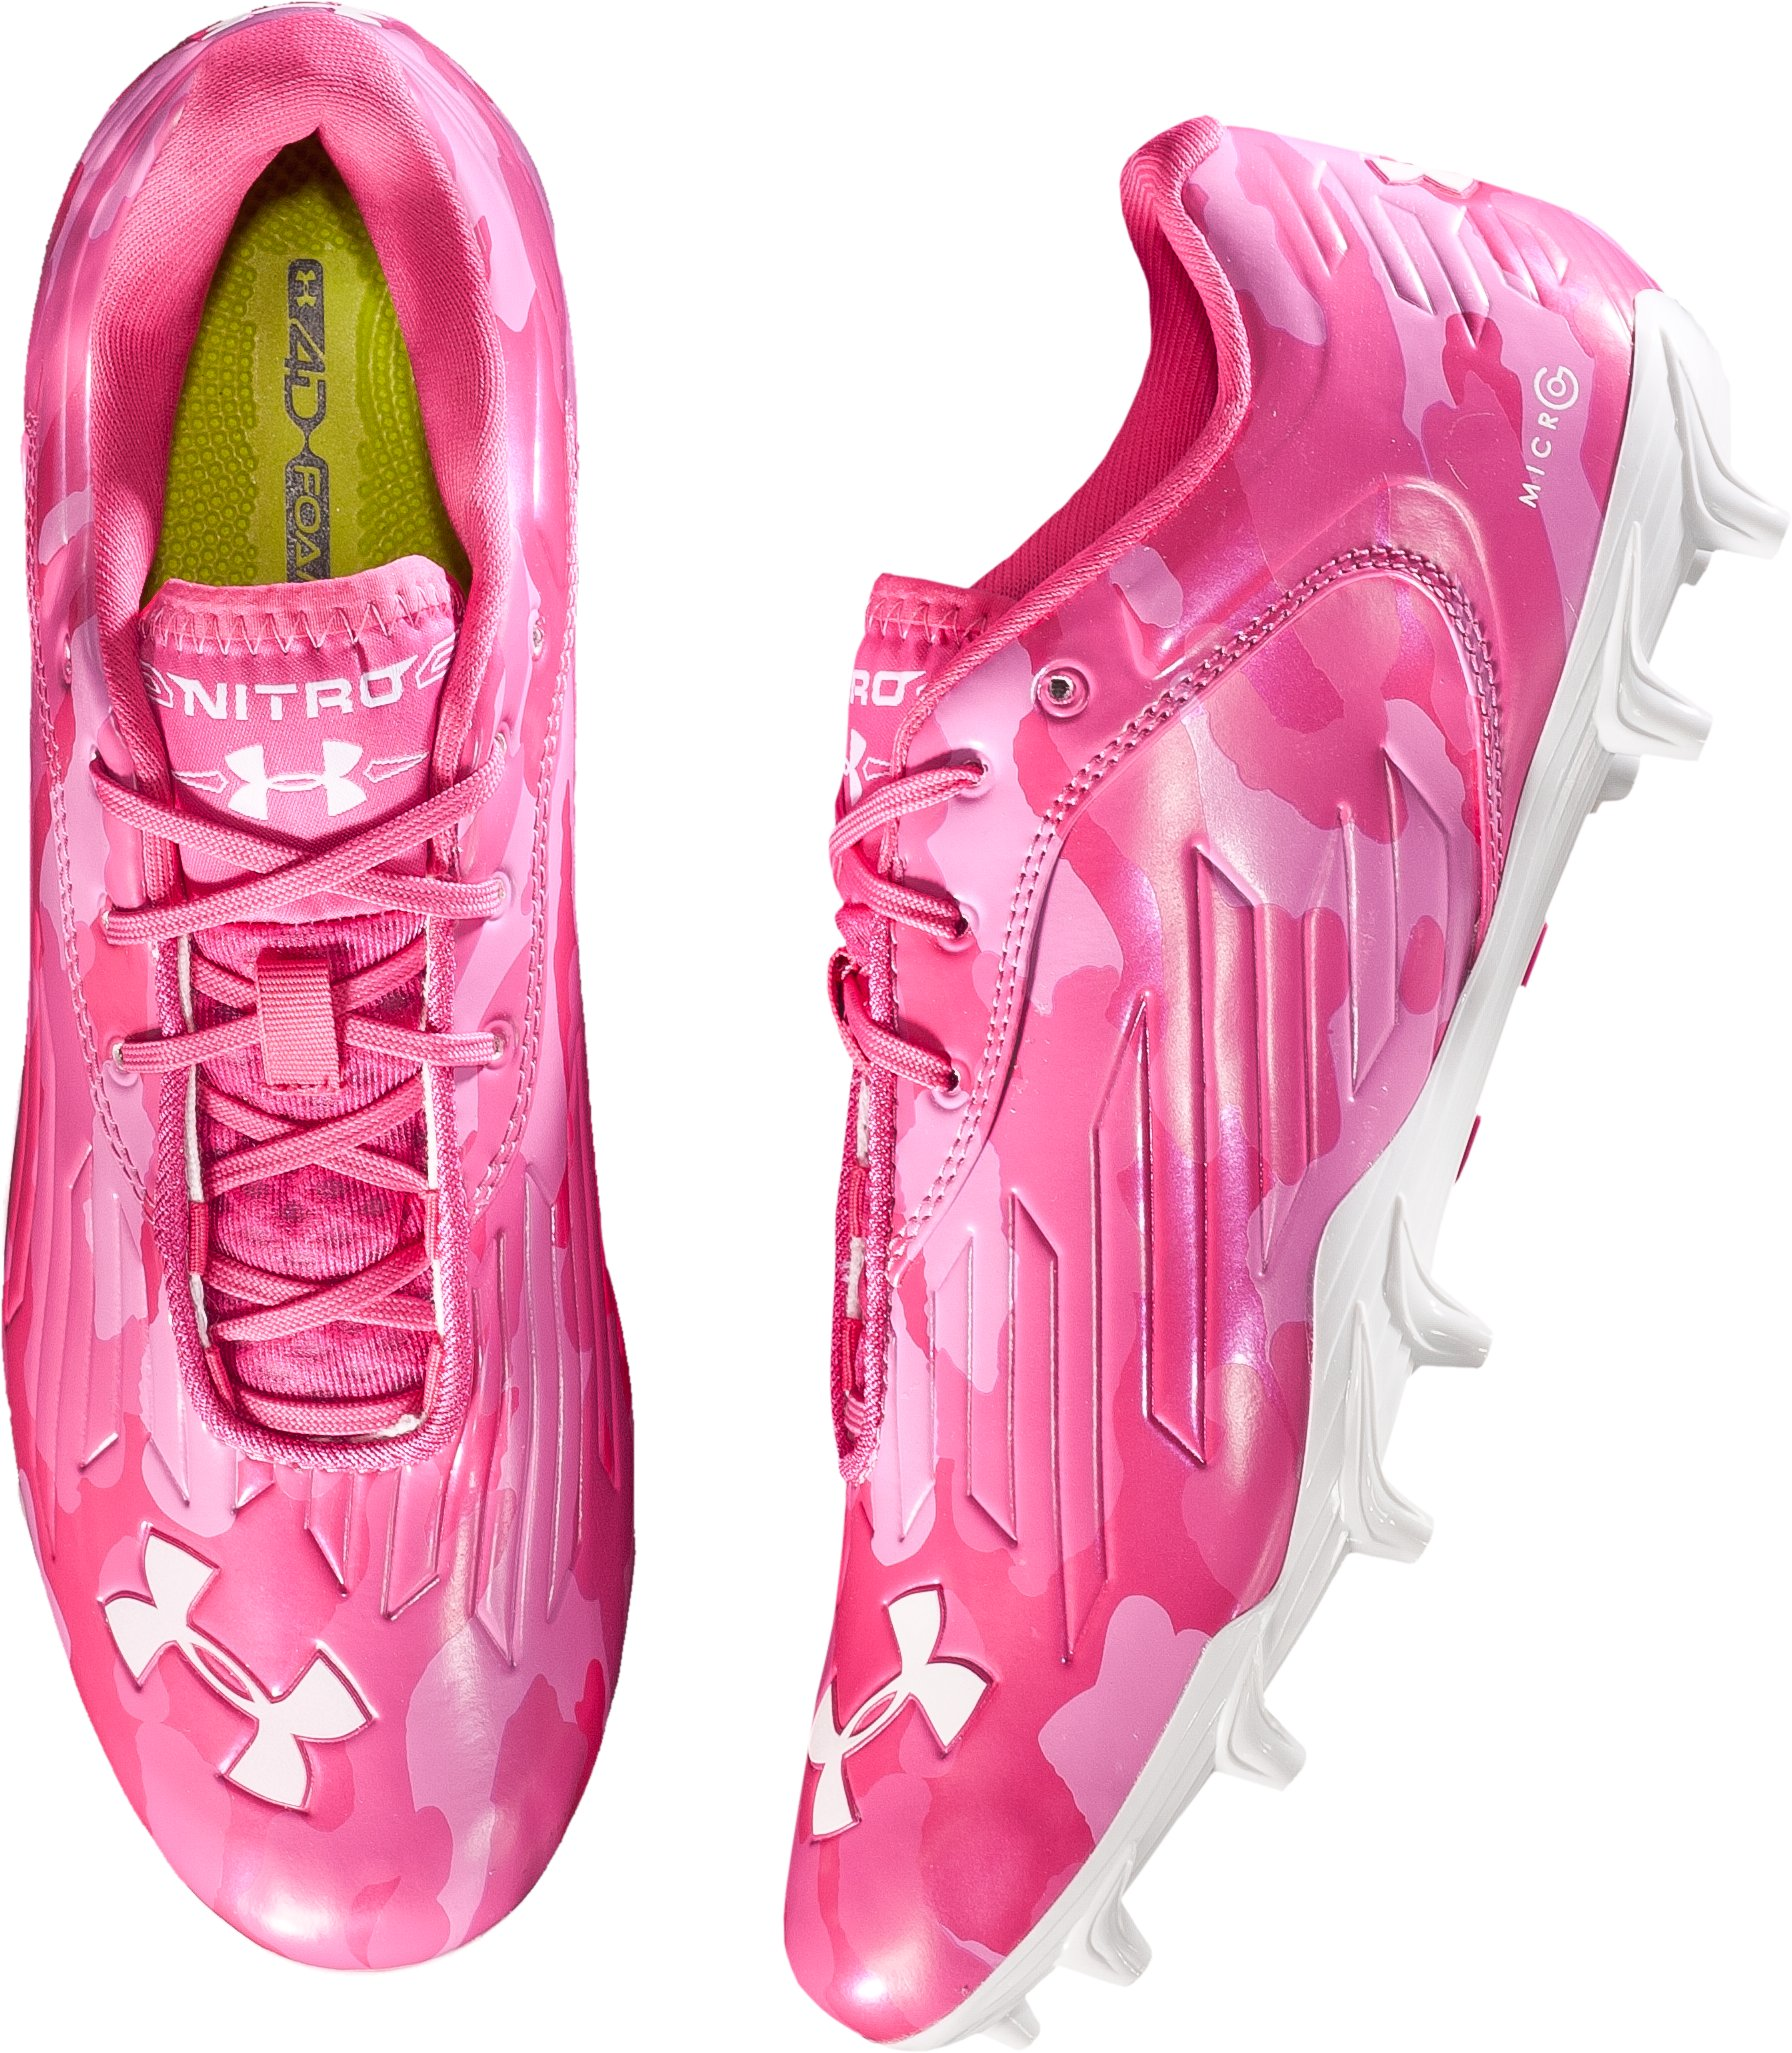 Men's UA Nitro Diablo Low MC Football Cleats, True Pink